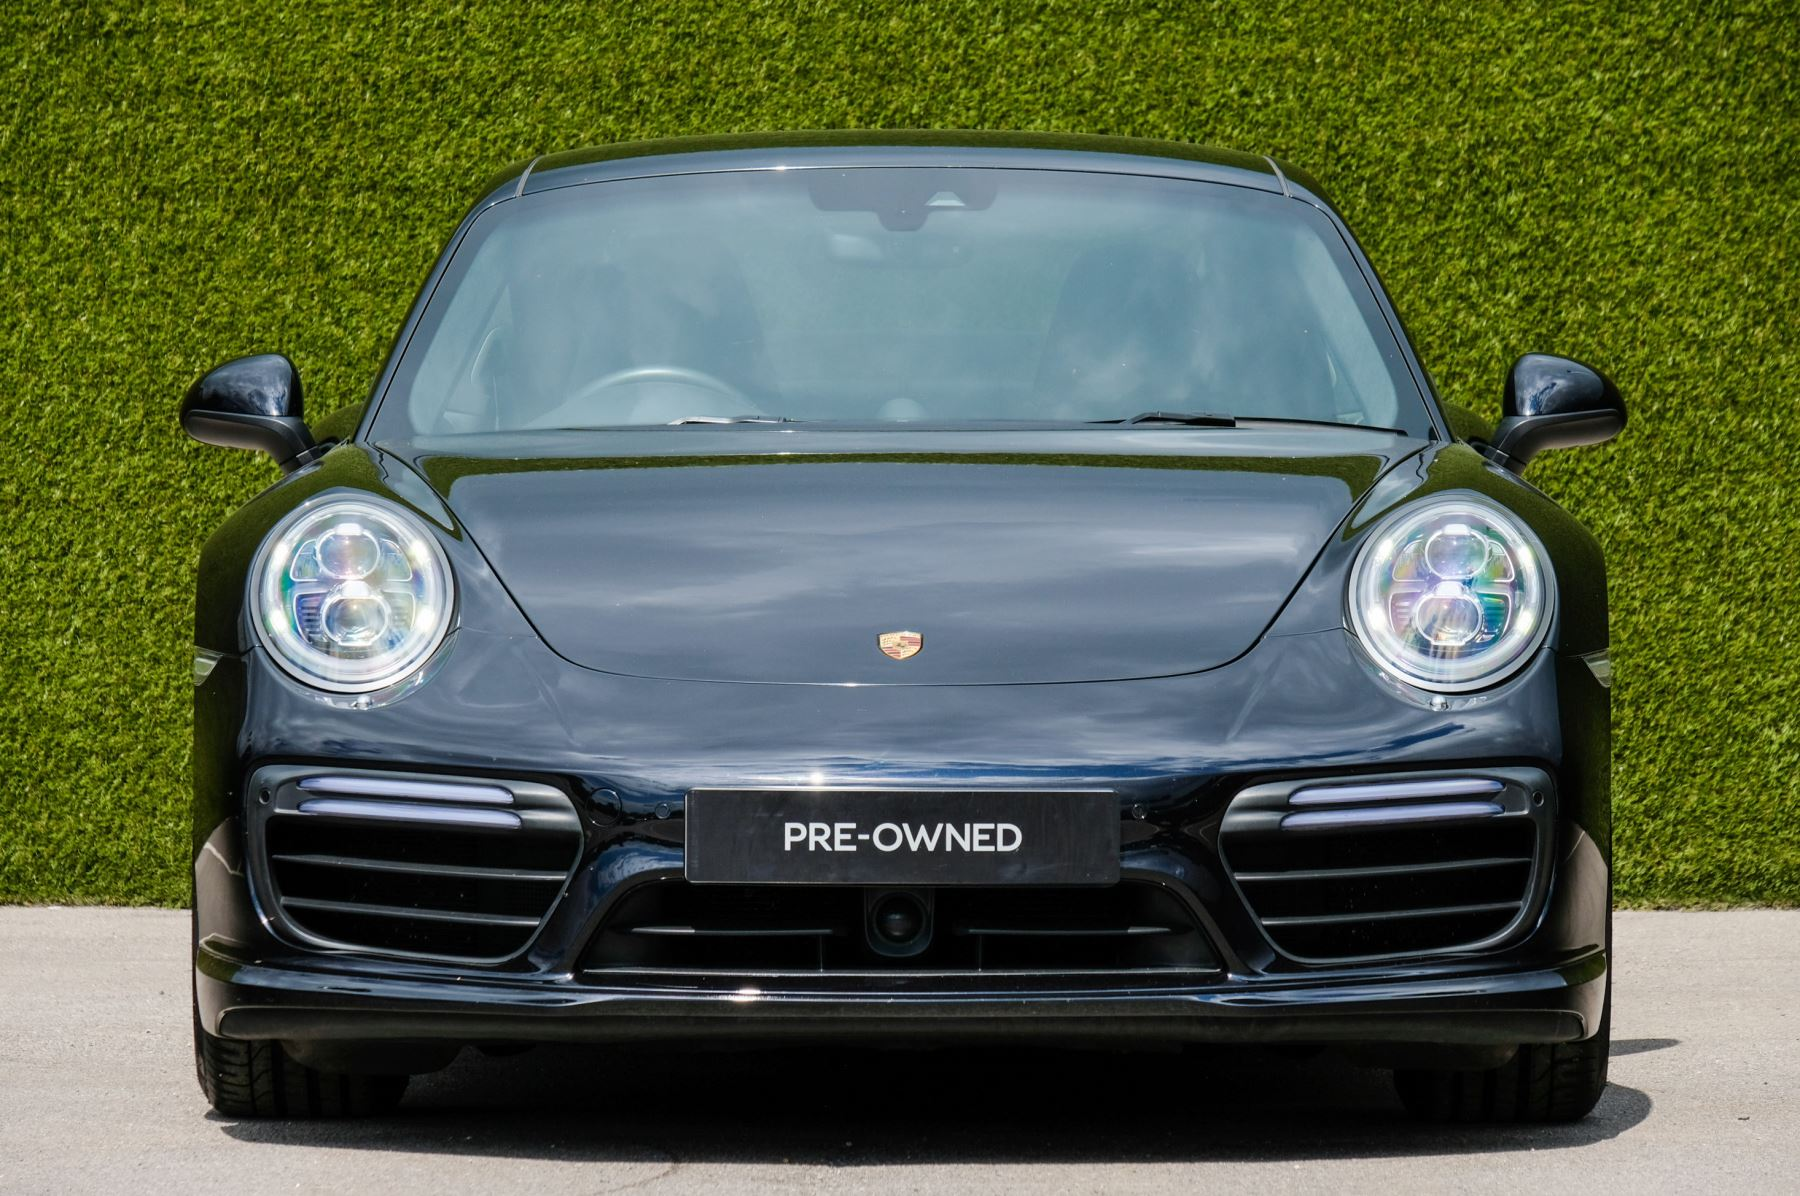 Porsche 911 PDK - Carbon interior package - Privacy Glass - 20 inch Sport Classic wheels image 2